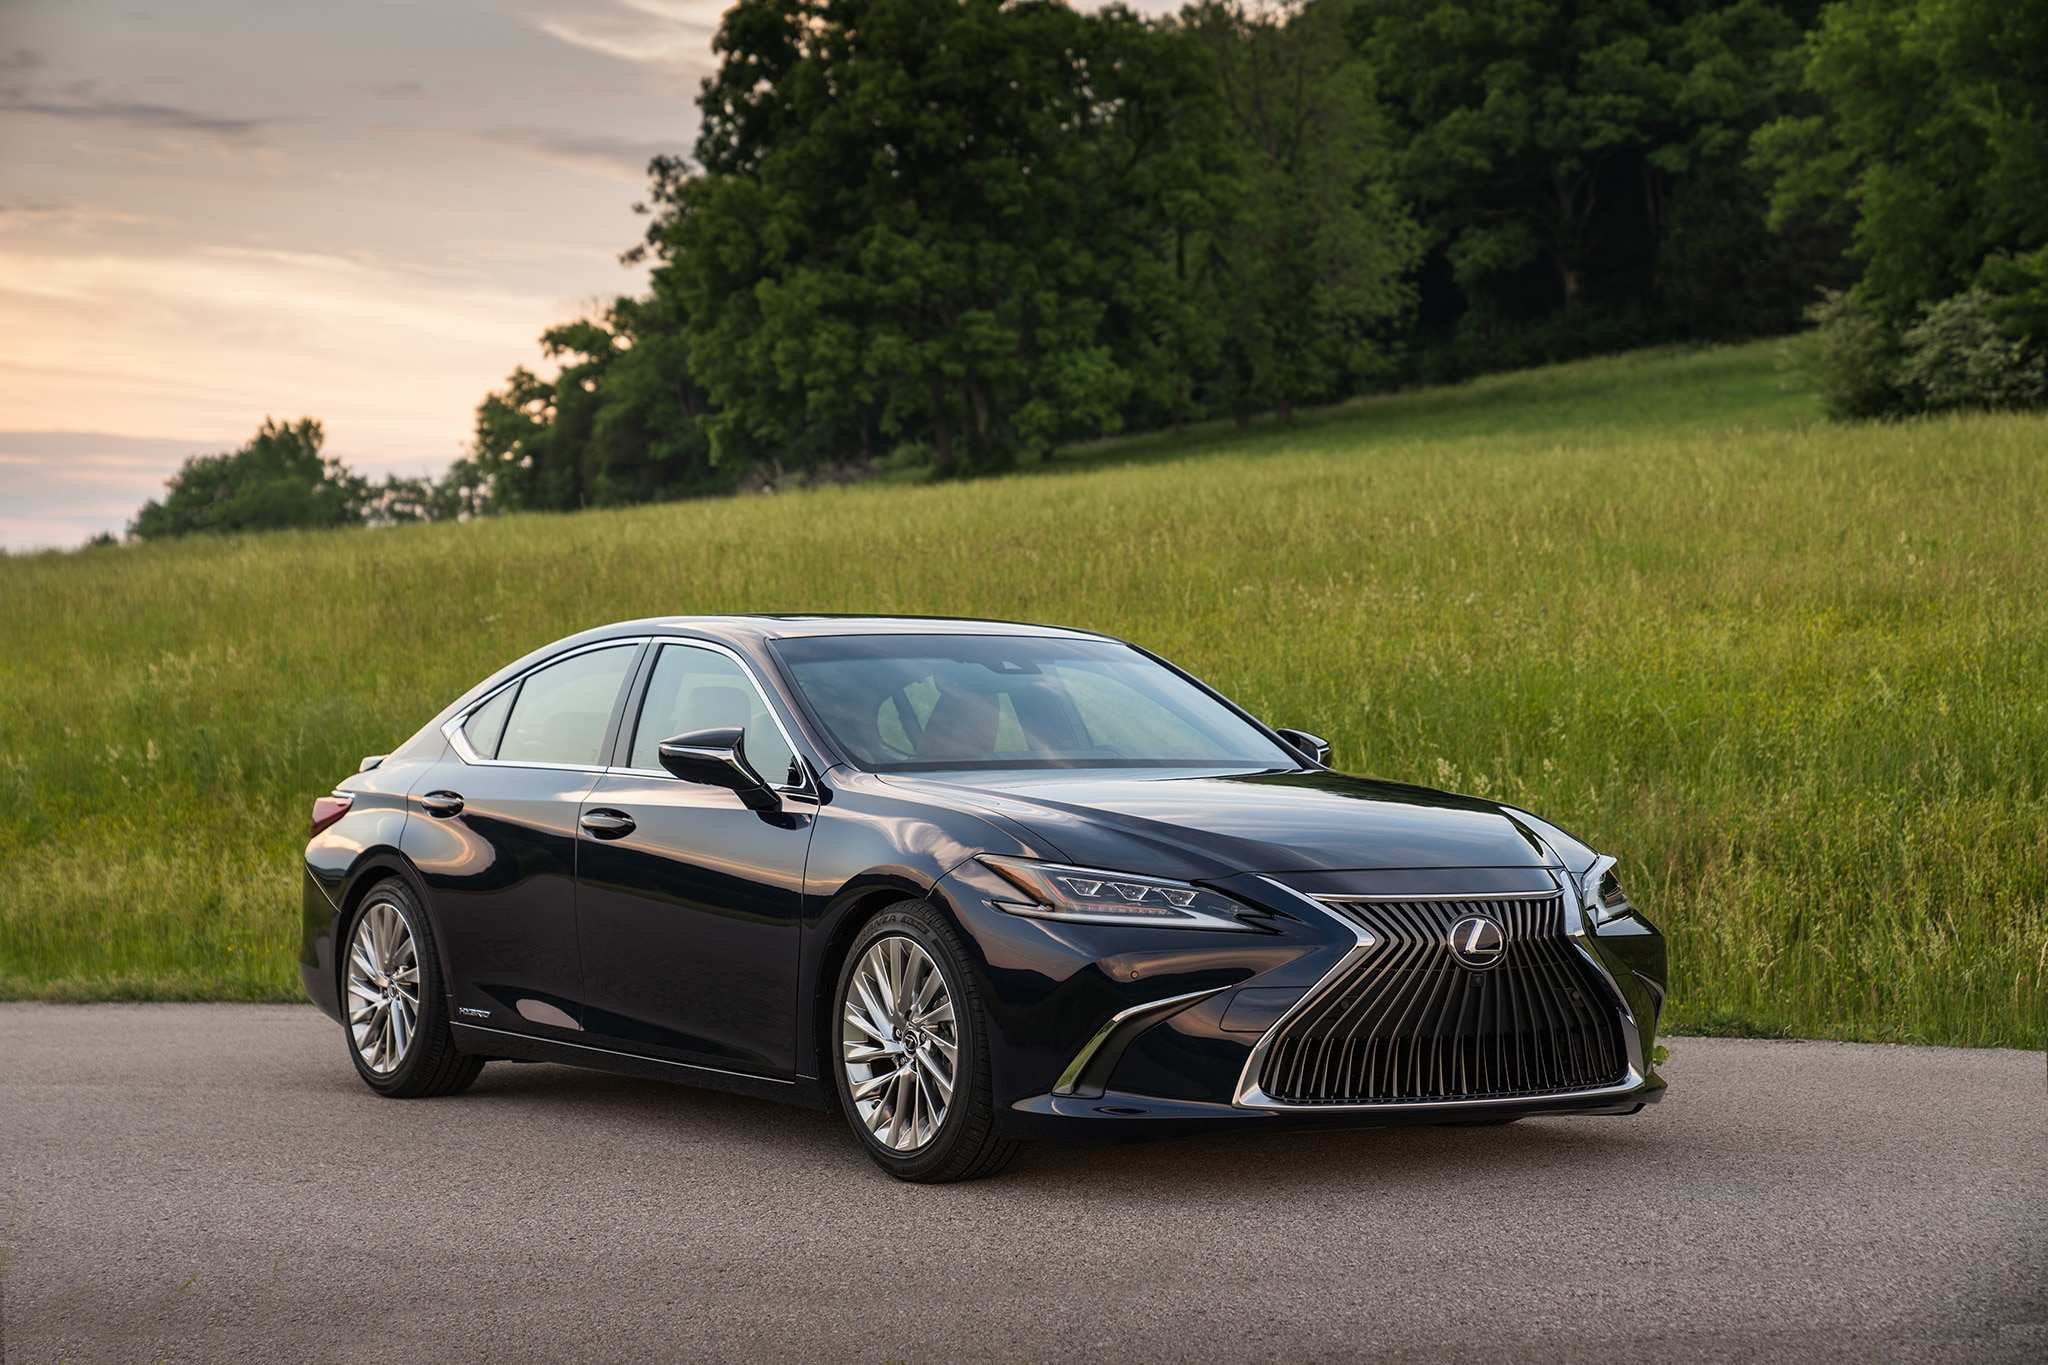 38 Best Review 2019 Lexus Es Hybrid Rumors Pictures by 2019 Lexus Es Hybrid Rumors